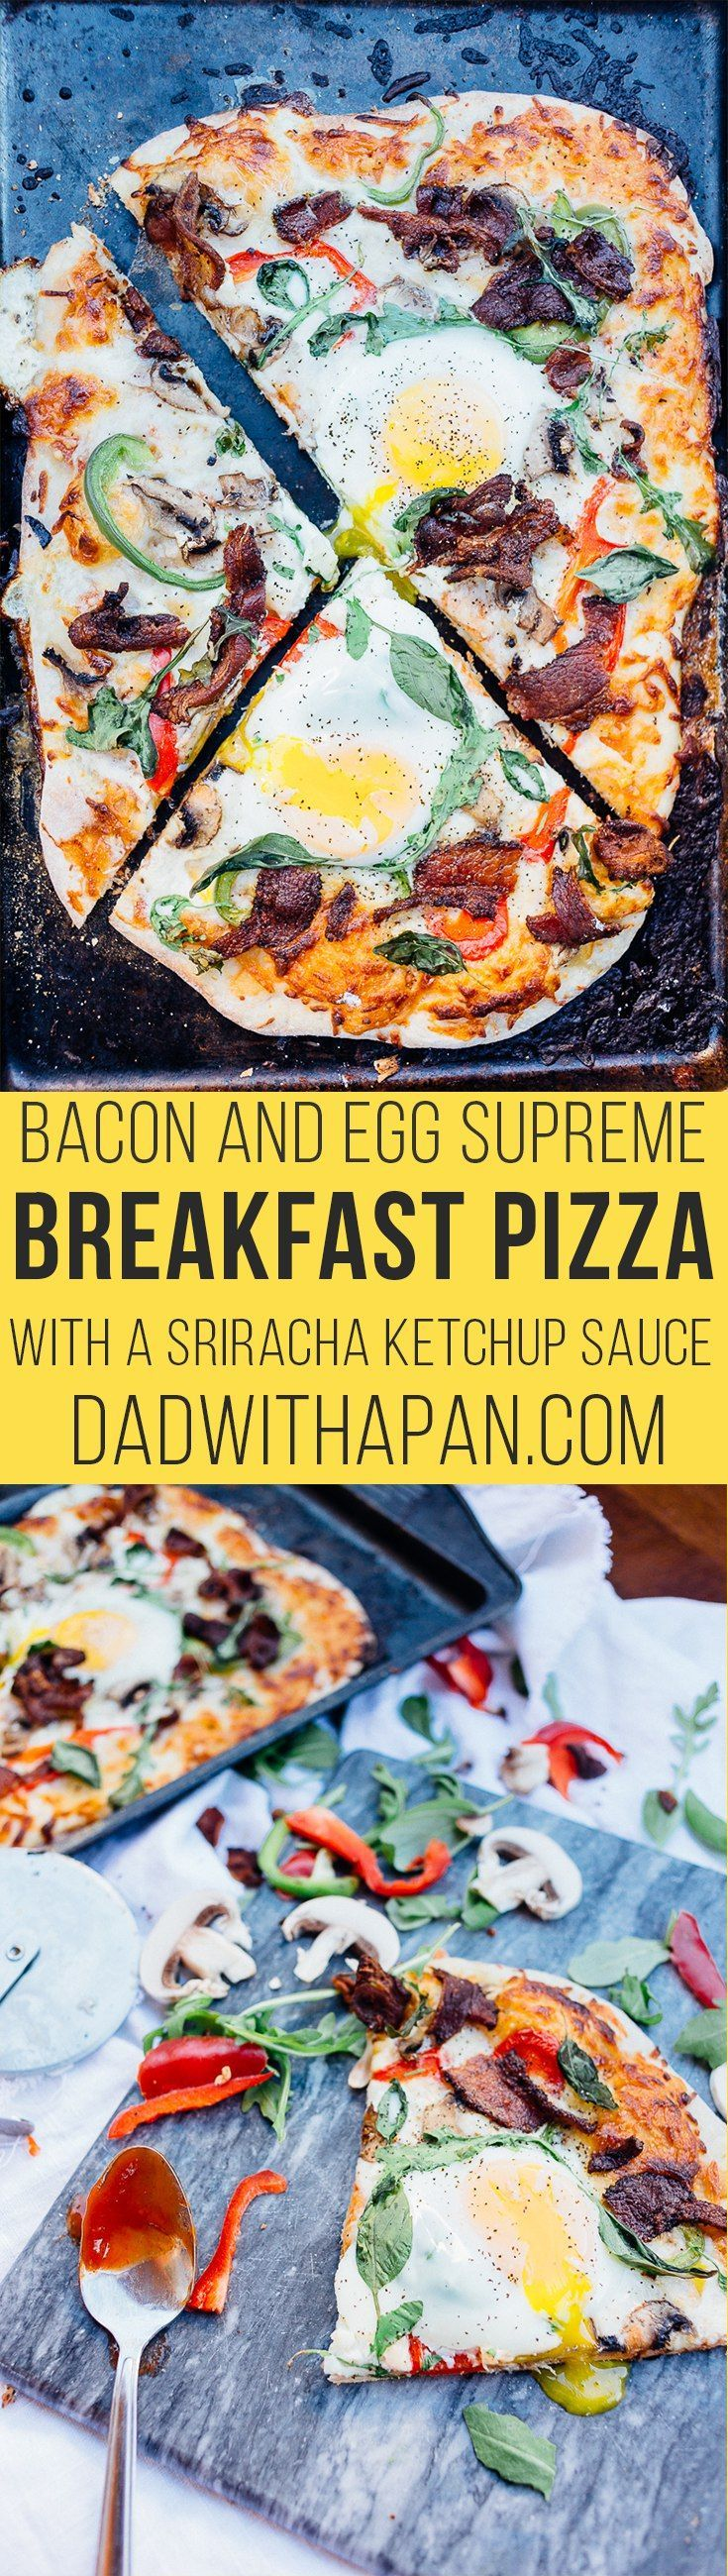 Supreme Bacon and Egg Breakfast Pizza - Dad With A Pan